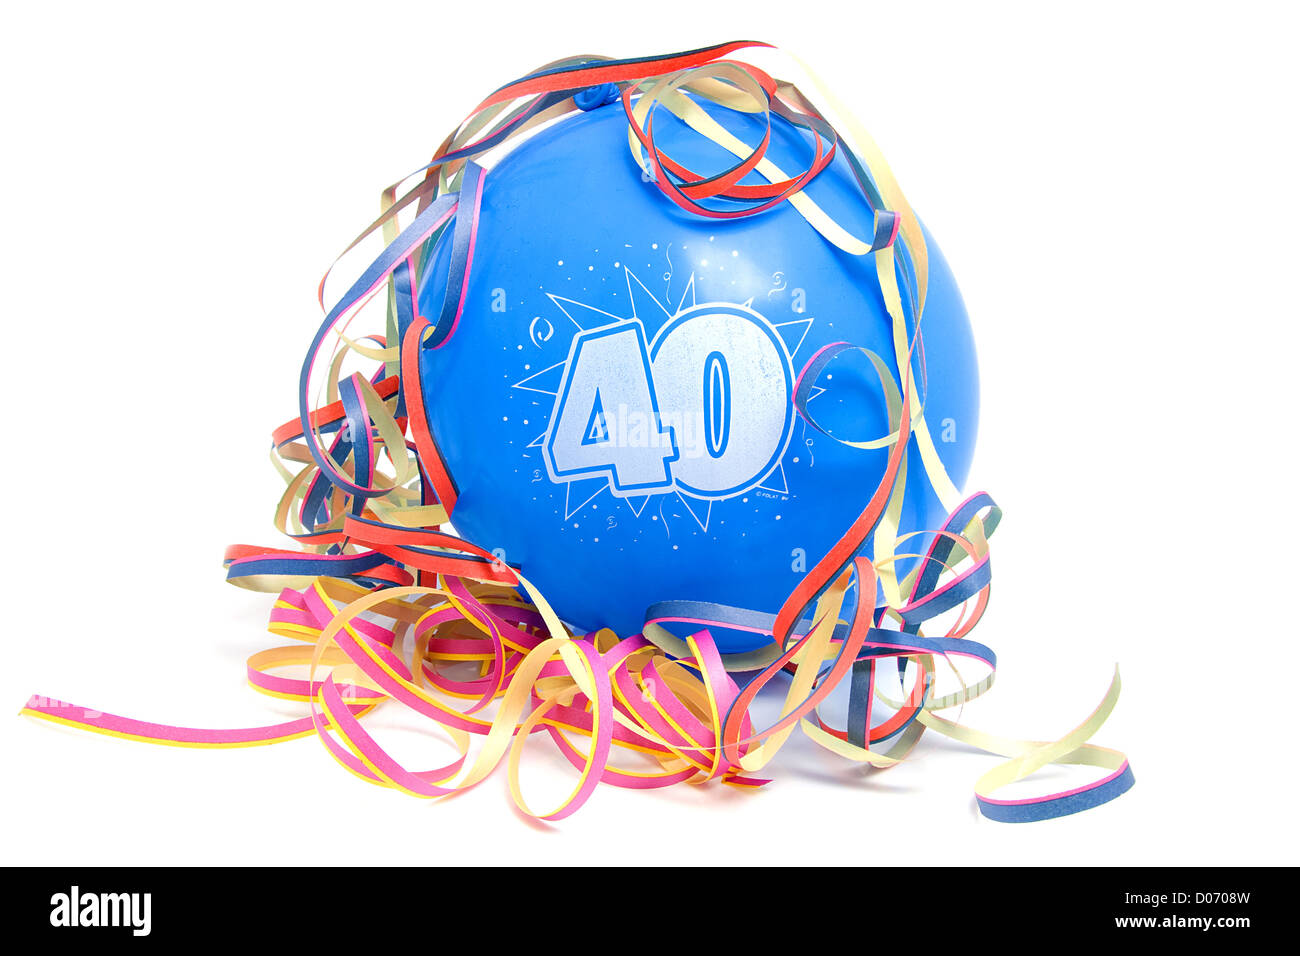 Blue birthday balloon for someone who is 40 years old with party streamers over white background - Stock Image